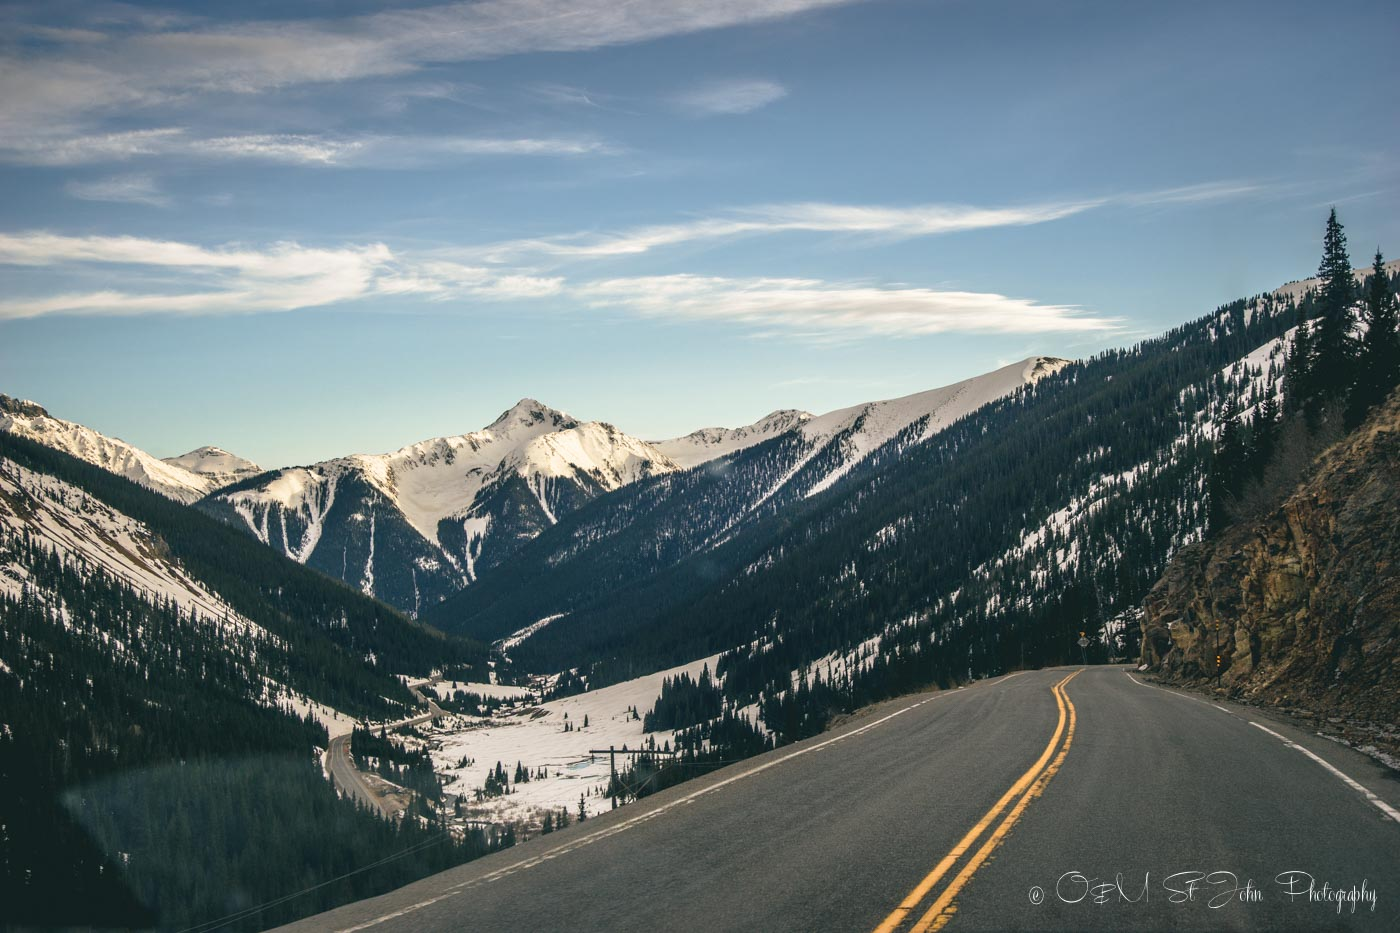 Colorado road trip: Along the Million Dollar Highway in Colorado, USA